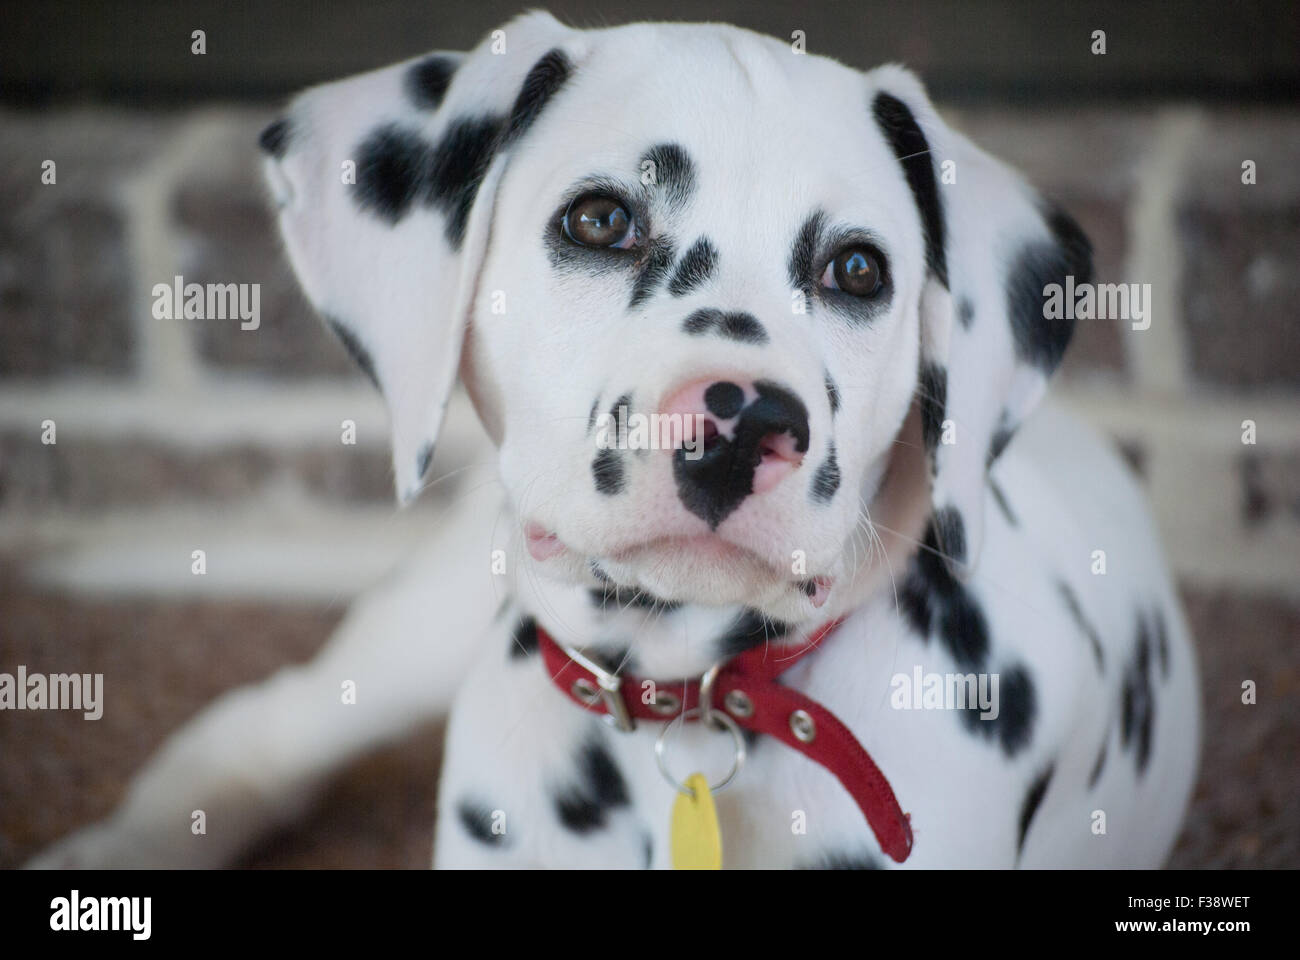 Pure Bred Dalmatian Puppy at 13 weeks old - Stock Image